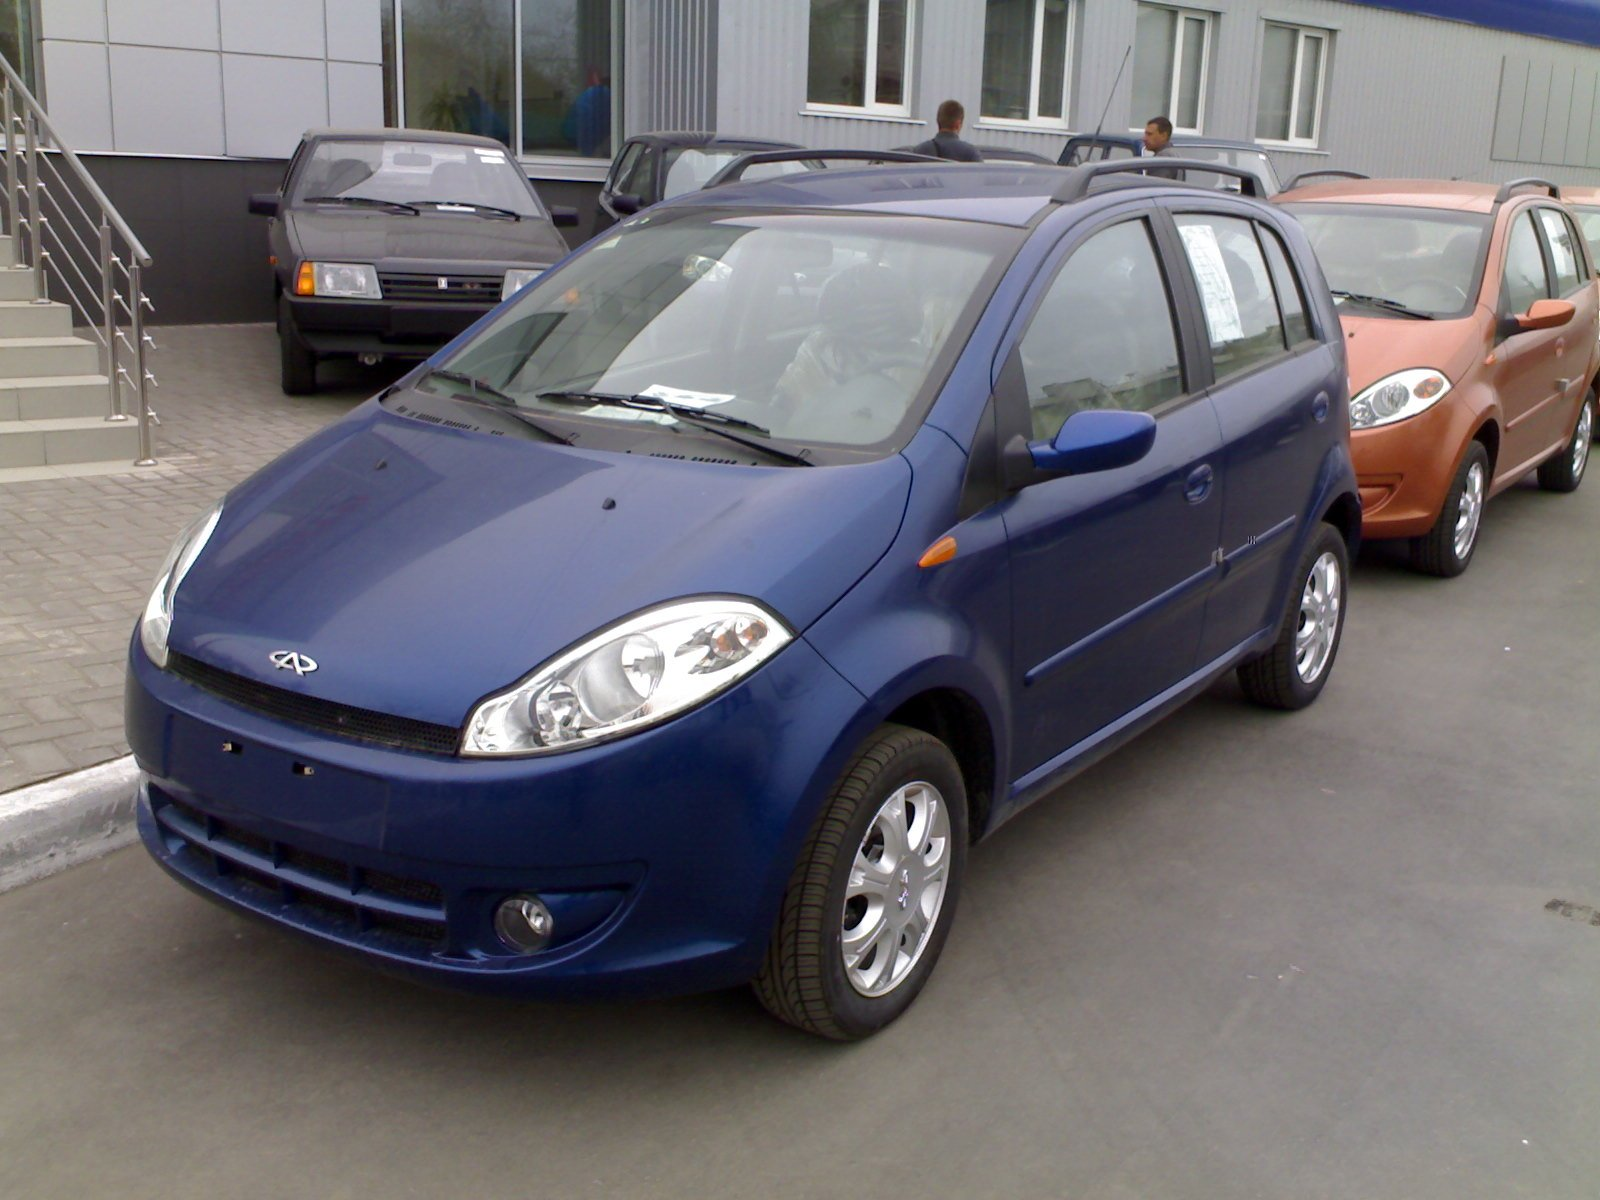 Pictures of chery a1 (kimo)